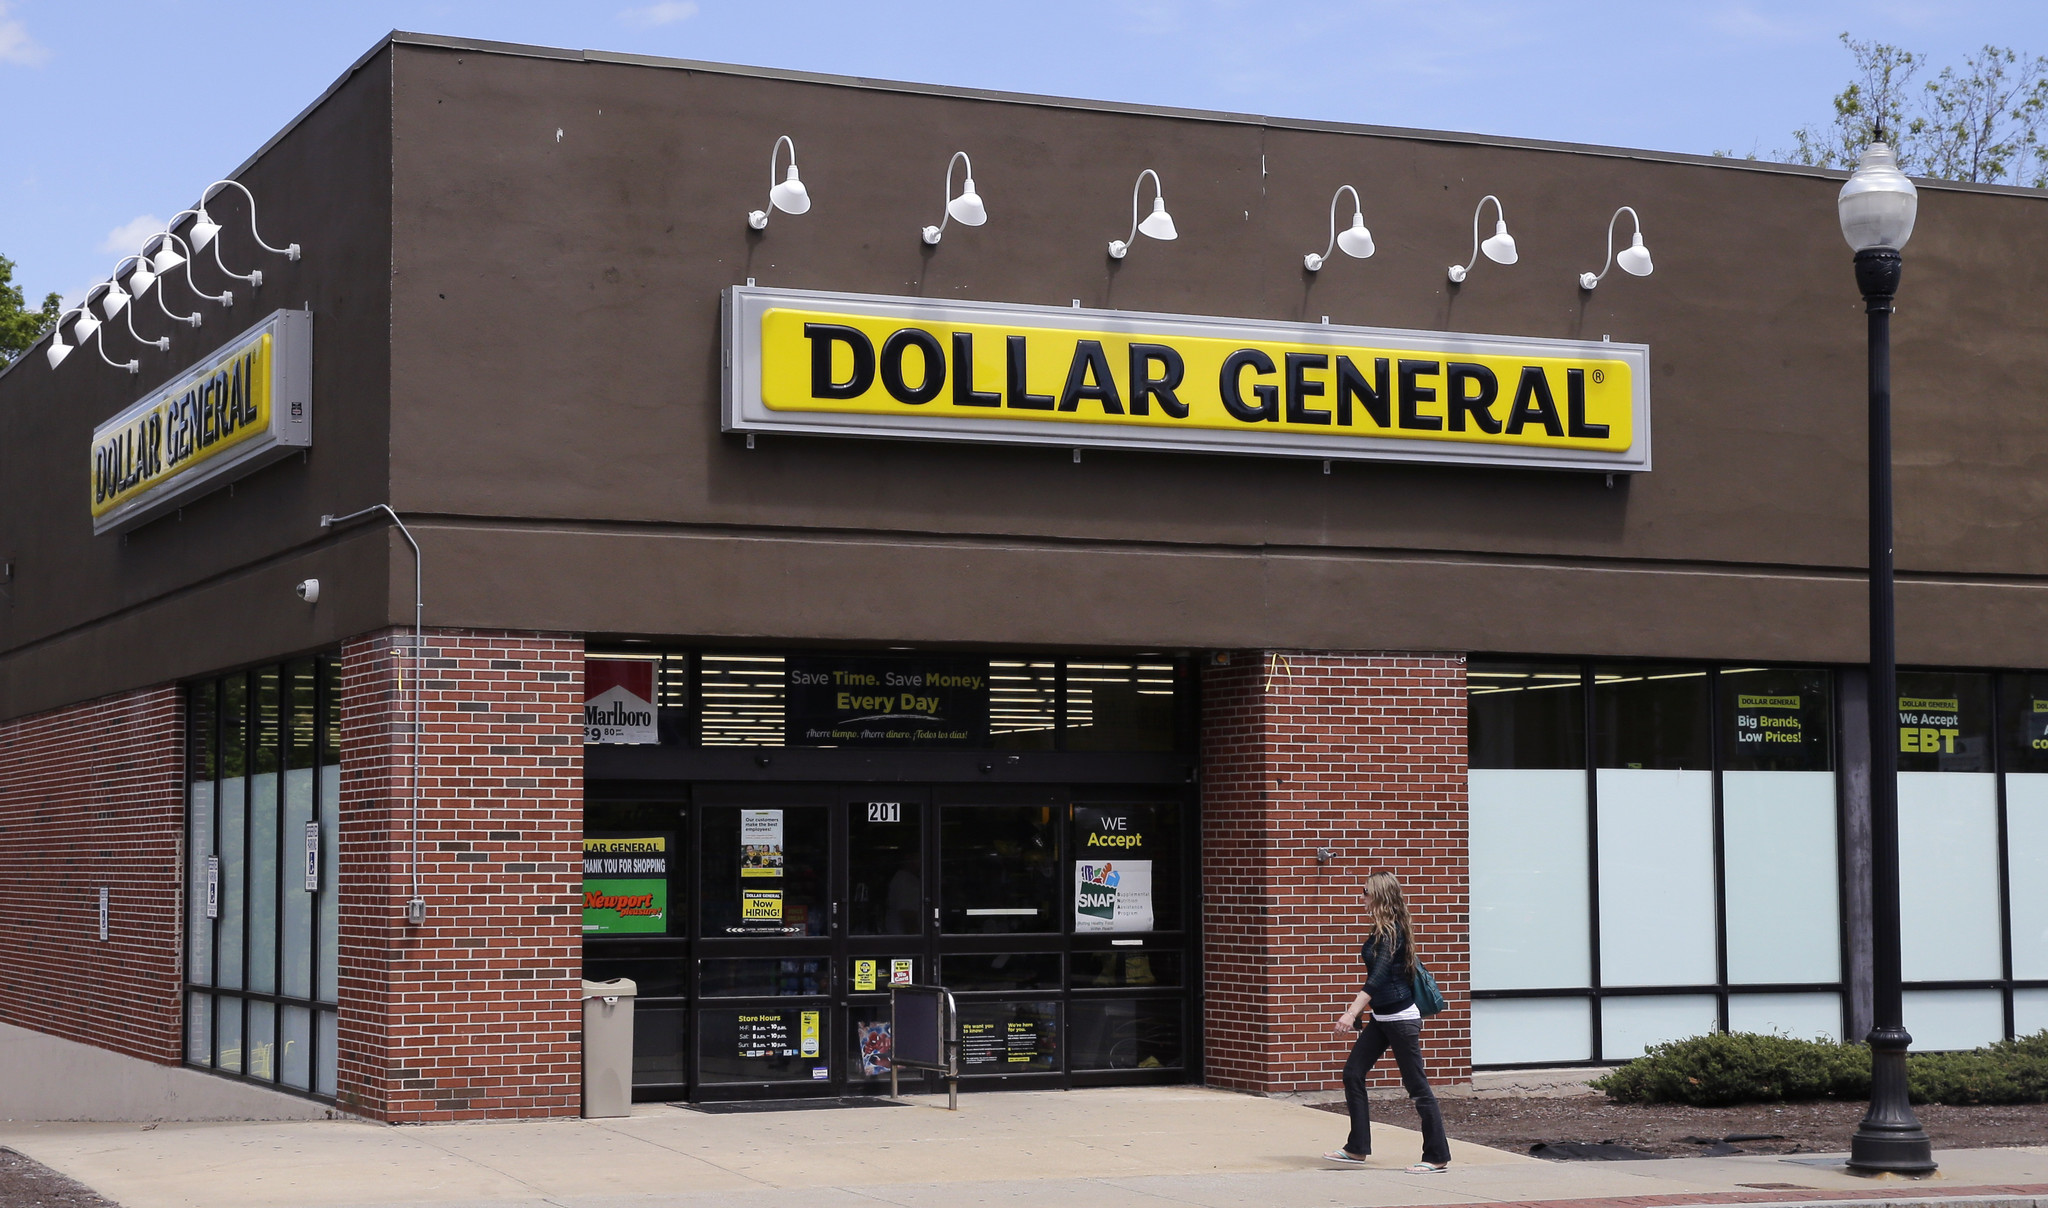 Dollar General is the nation's largest small-box discount retailer. We make shopping for everyday needs simpler by offering the most popular brands at low everyday prices in convenient locations.